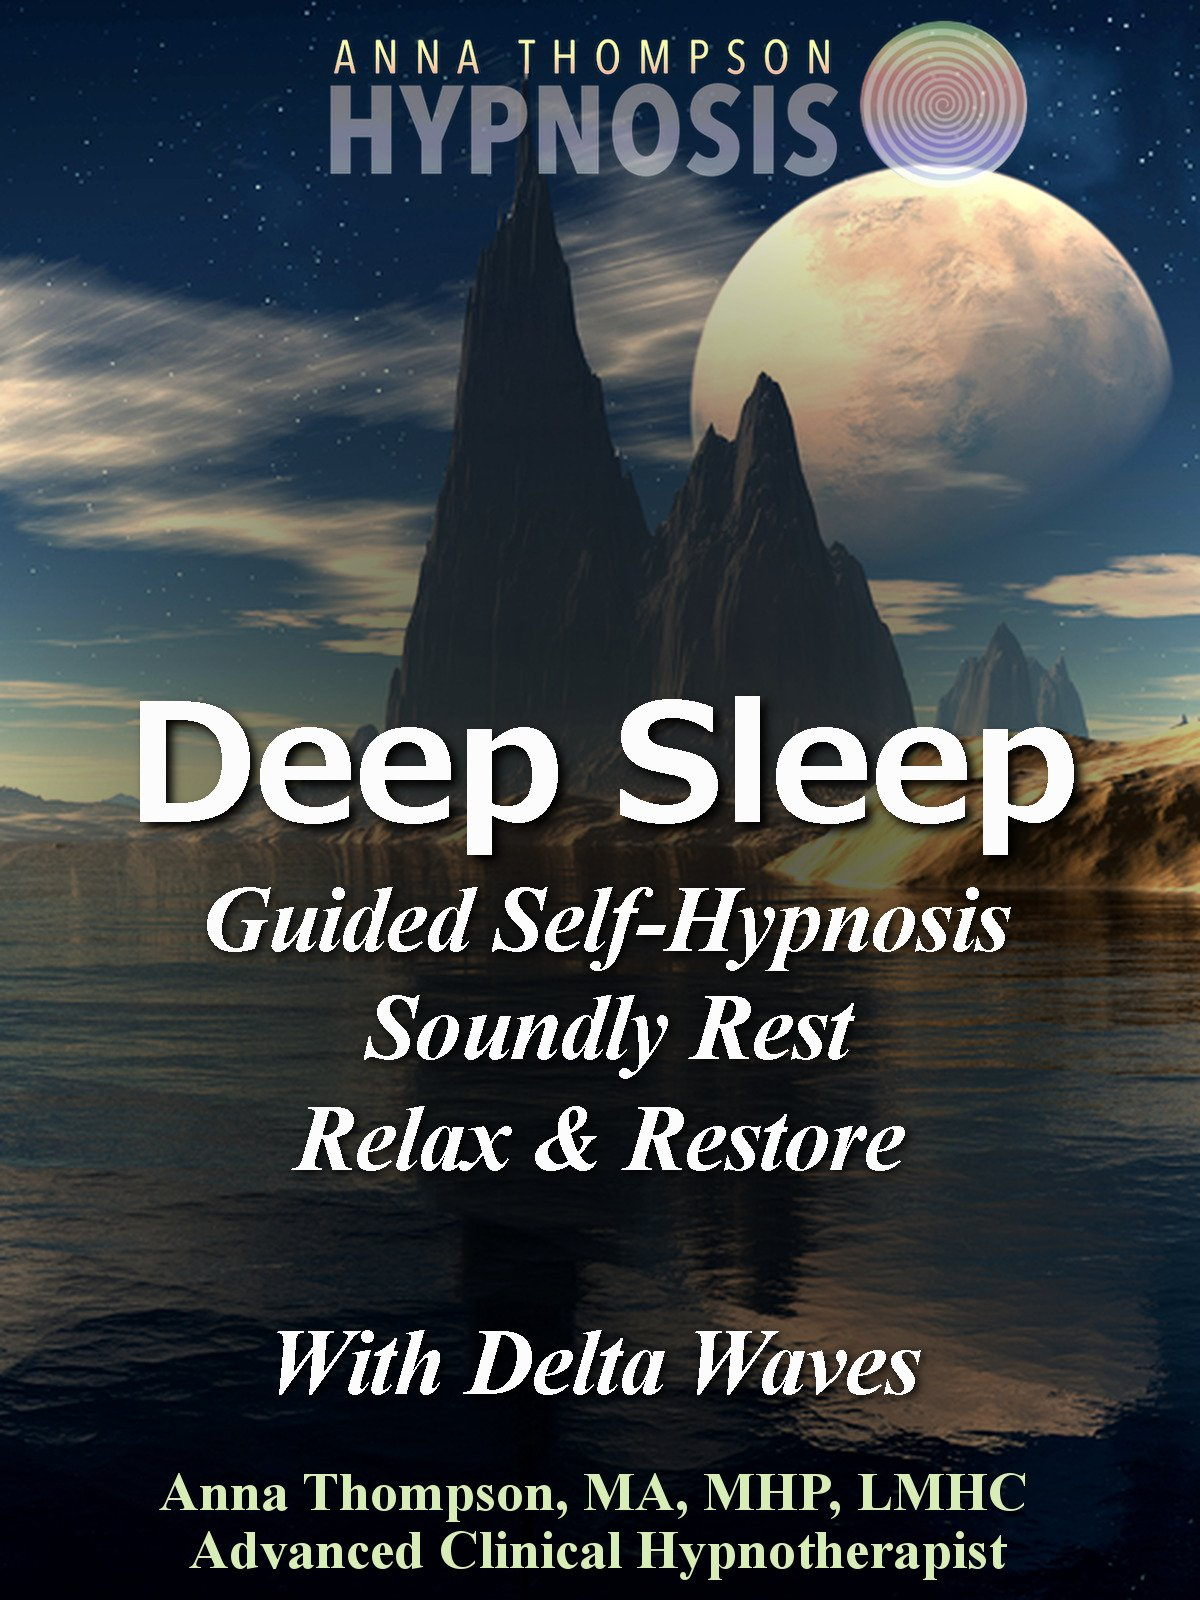 Deep Sleep Guided Self Hypnosis, Soundly Rest, Relax & Restore With Delta Waves